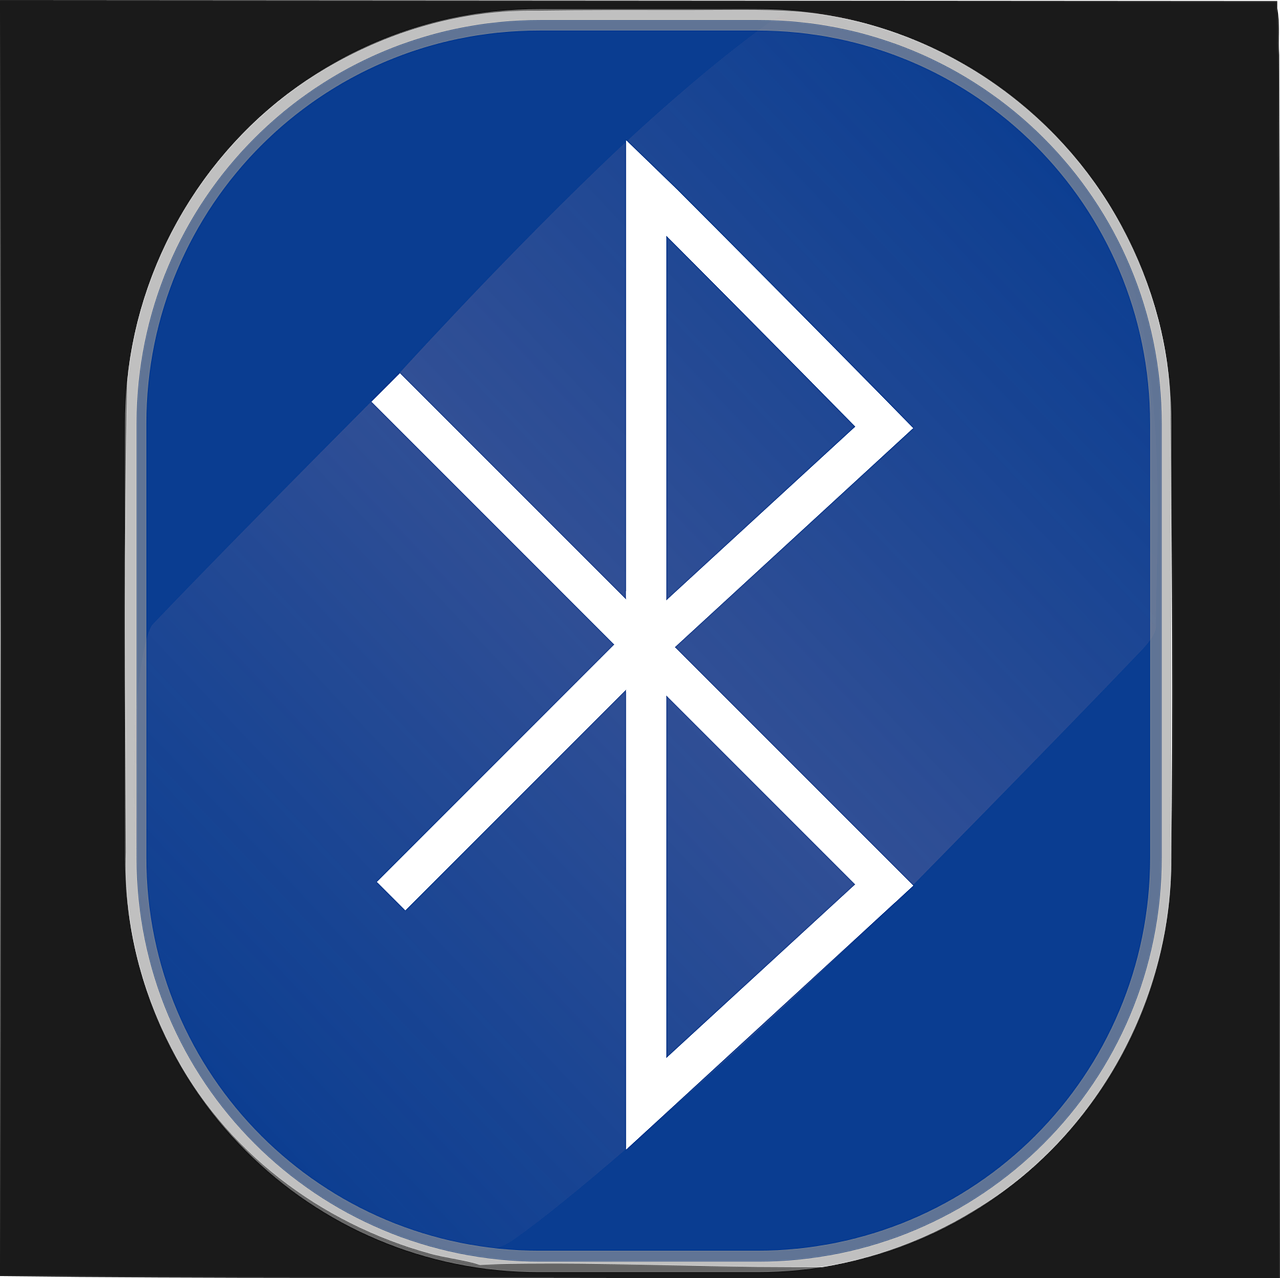 The Bluetooth logo, named after Danish King Harald Bluetooth. Image source: www.pixabay.com